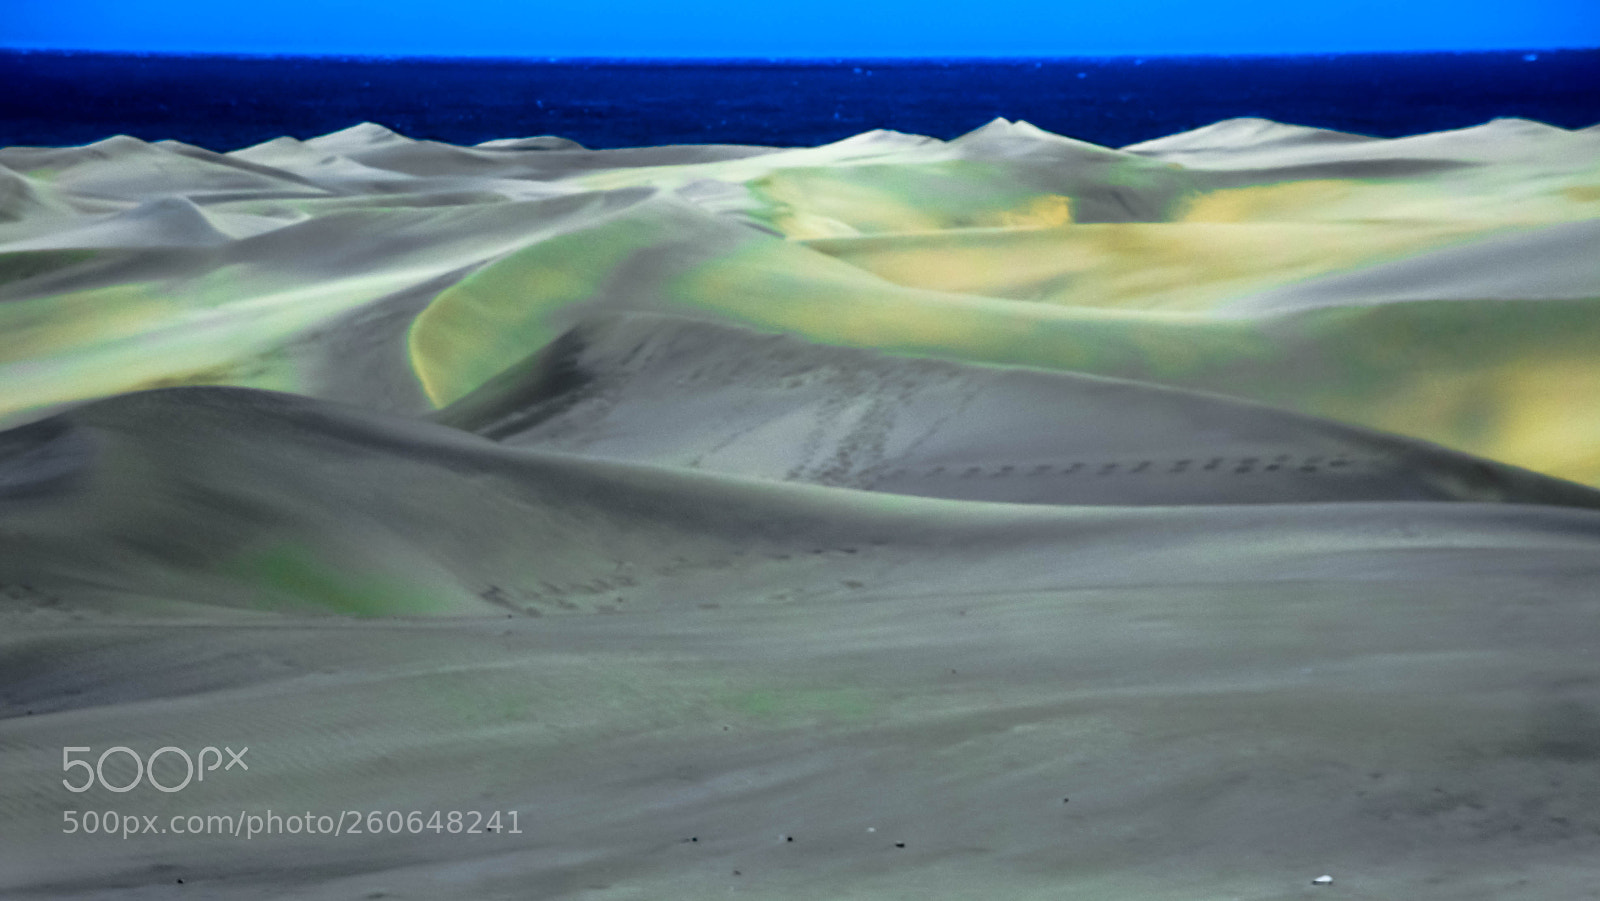 SEA glowing sand dunes